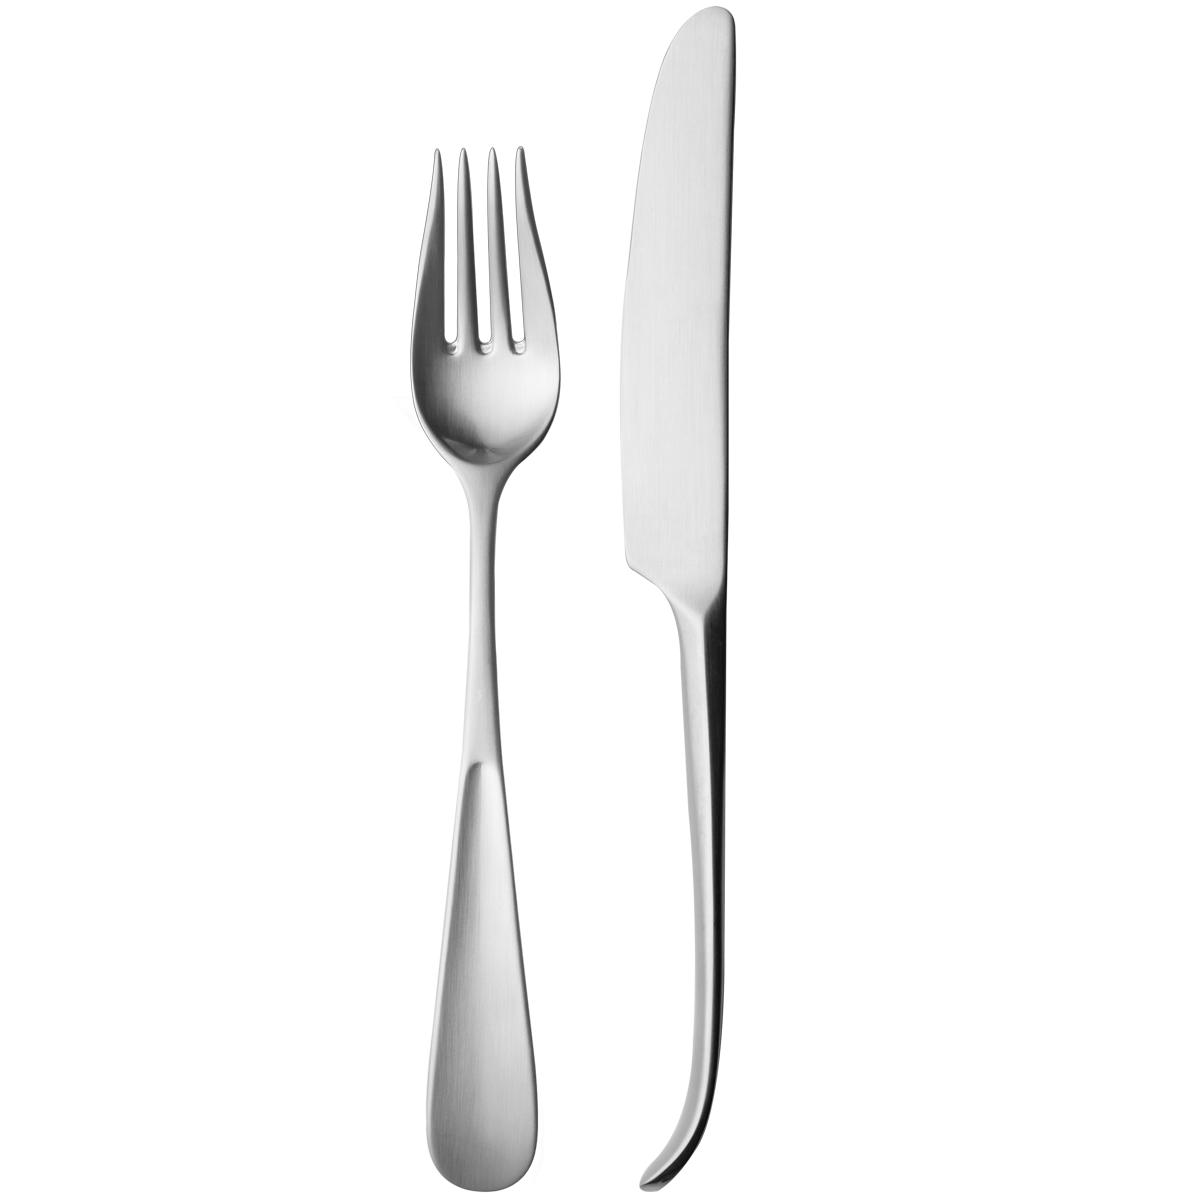 Fork and knife png. Pic free icons backgrounds